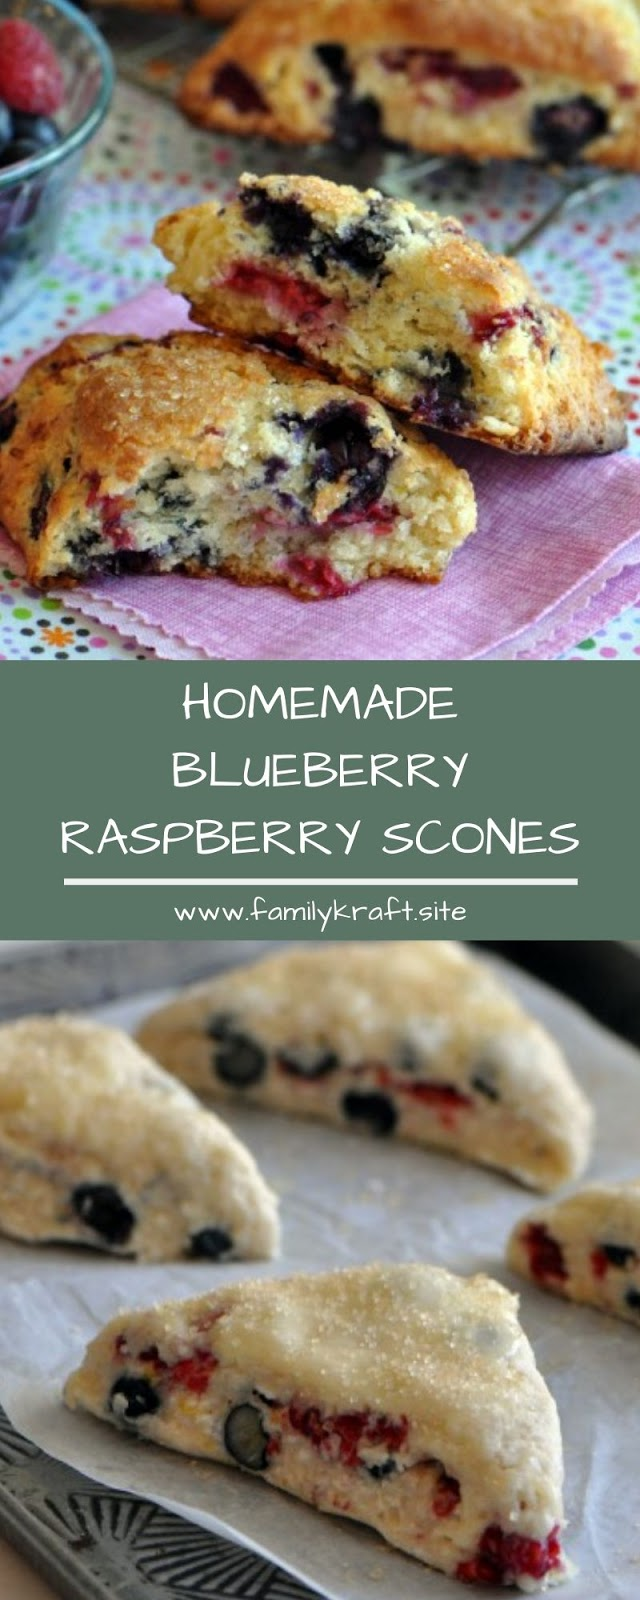 HOMEMADE BLUEBERRY RASPBERRY SCONES